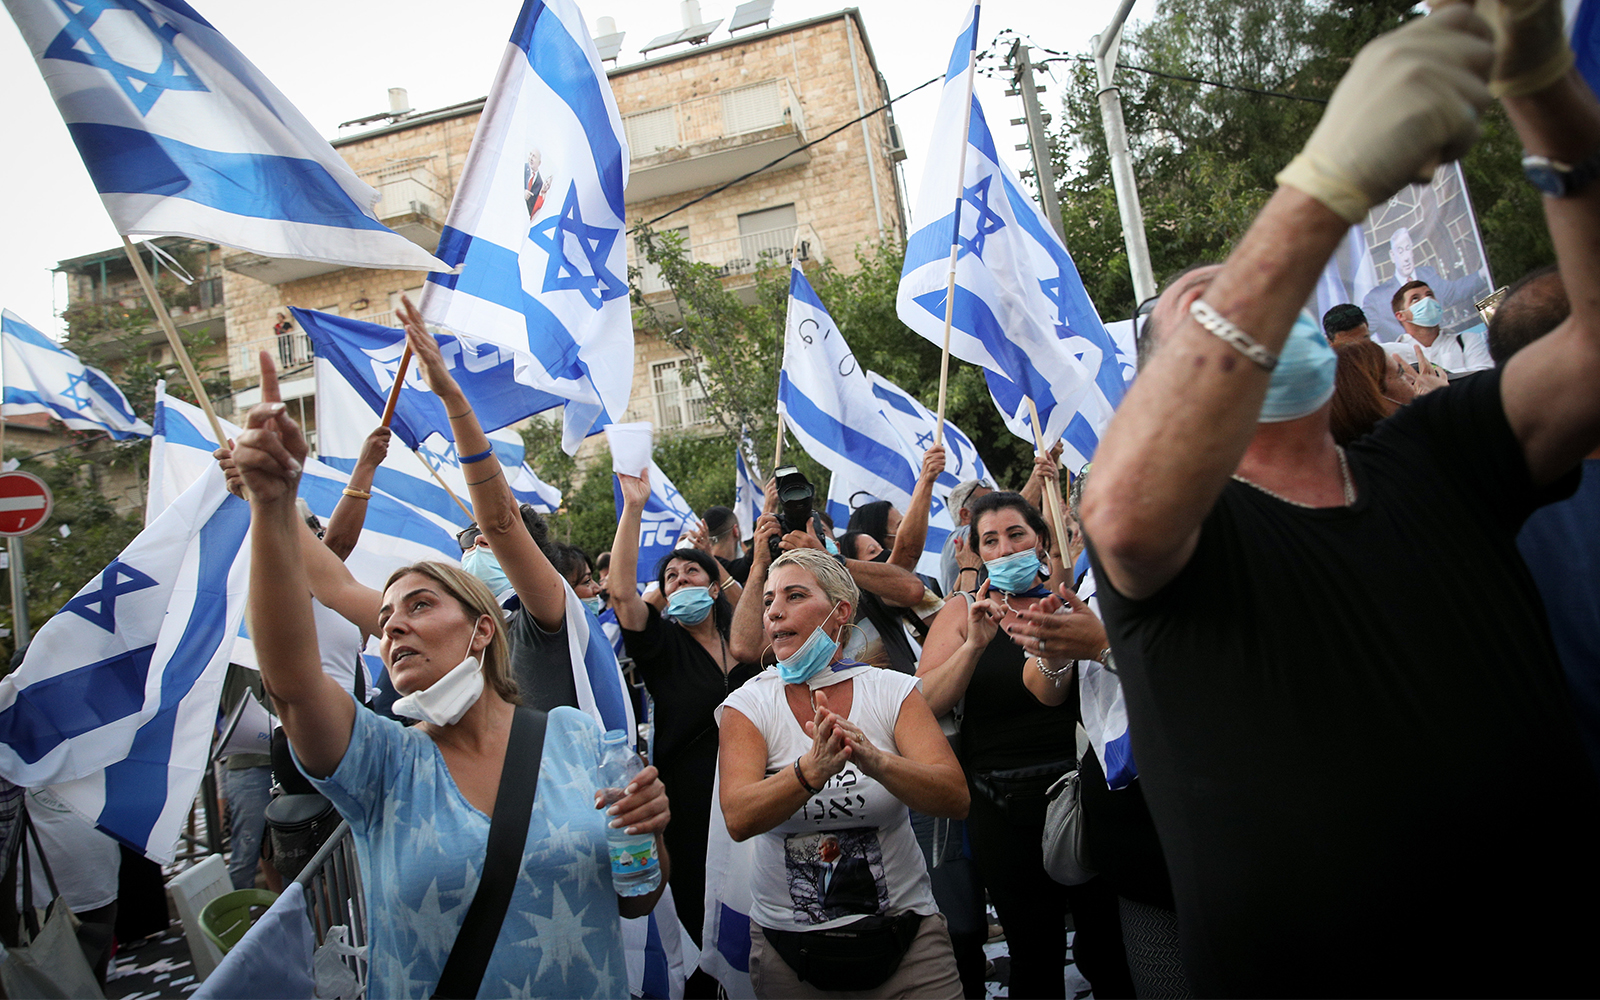 Supporters of Prime Minister Benjamin Netanyahu at a rally outside the PM's residence in Jerusalem, on July 23, 2020. (Yonatan Sindel/Flash90)